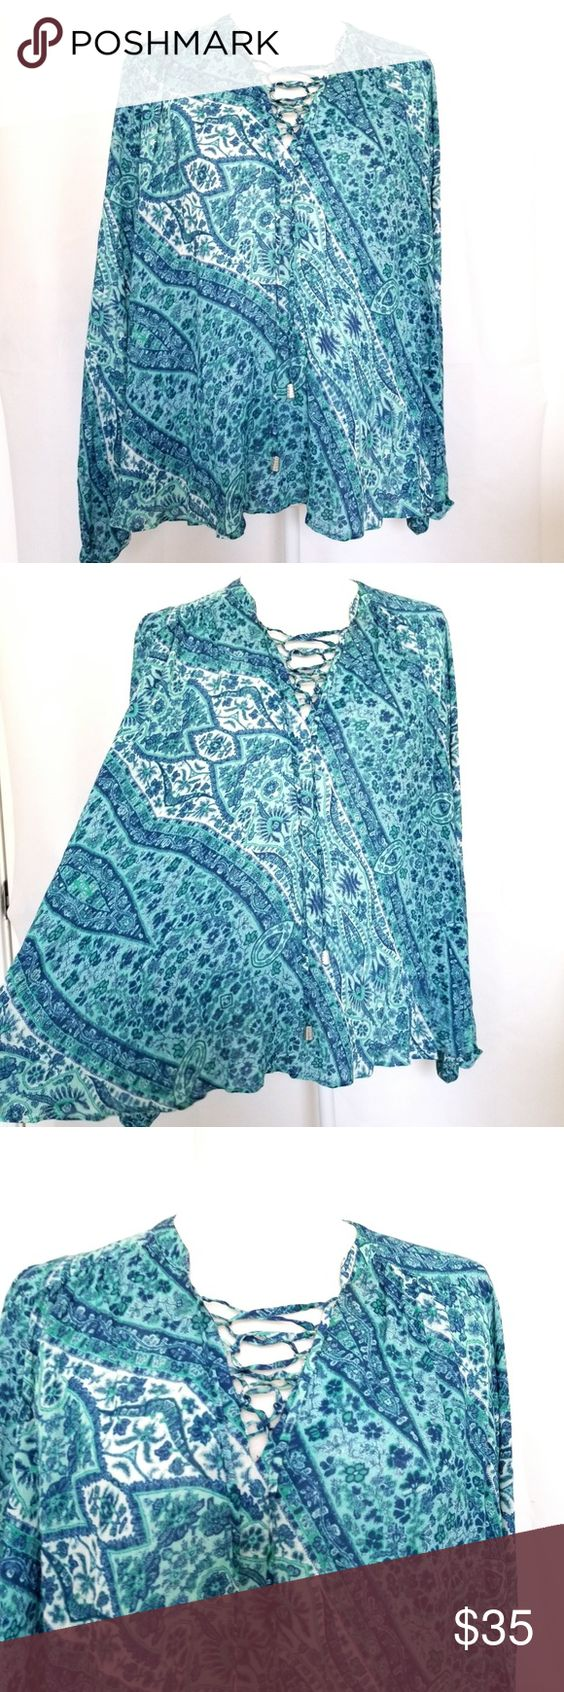 Anthropologie Nanette Lepore 6 Top Loose Fit Blue Loose Fit Blouse Loose Fitting Clothes Design